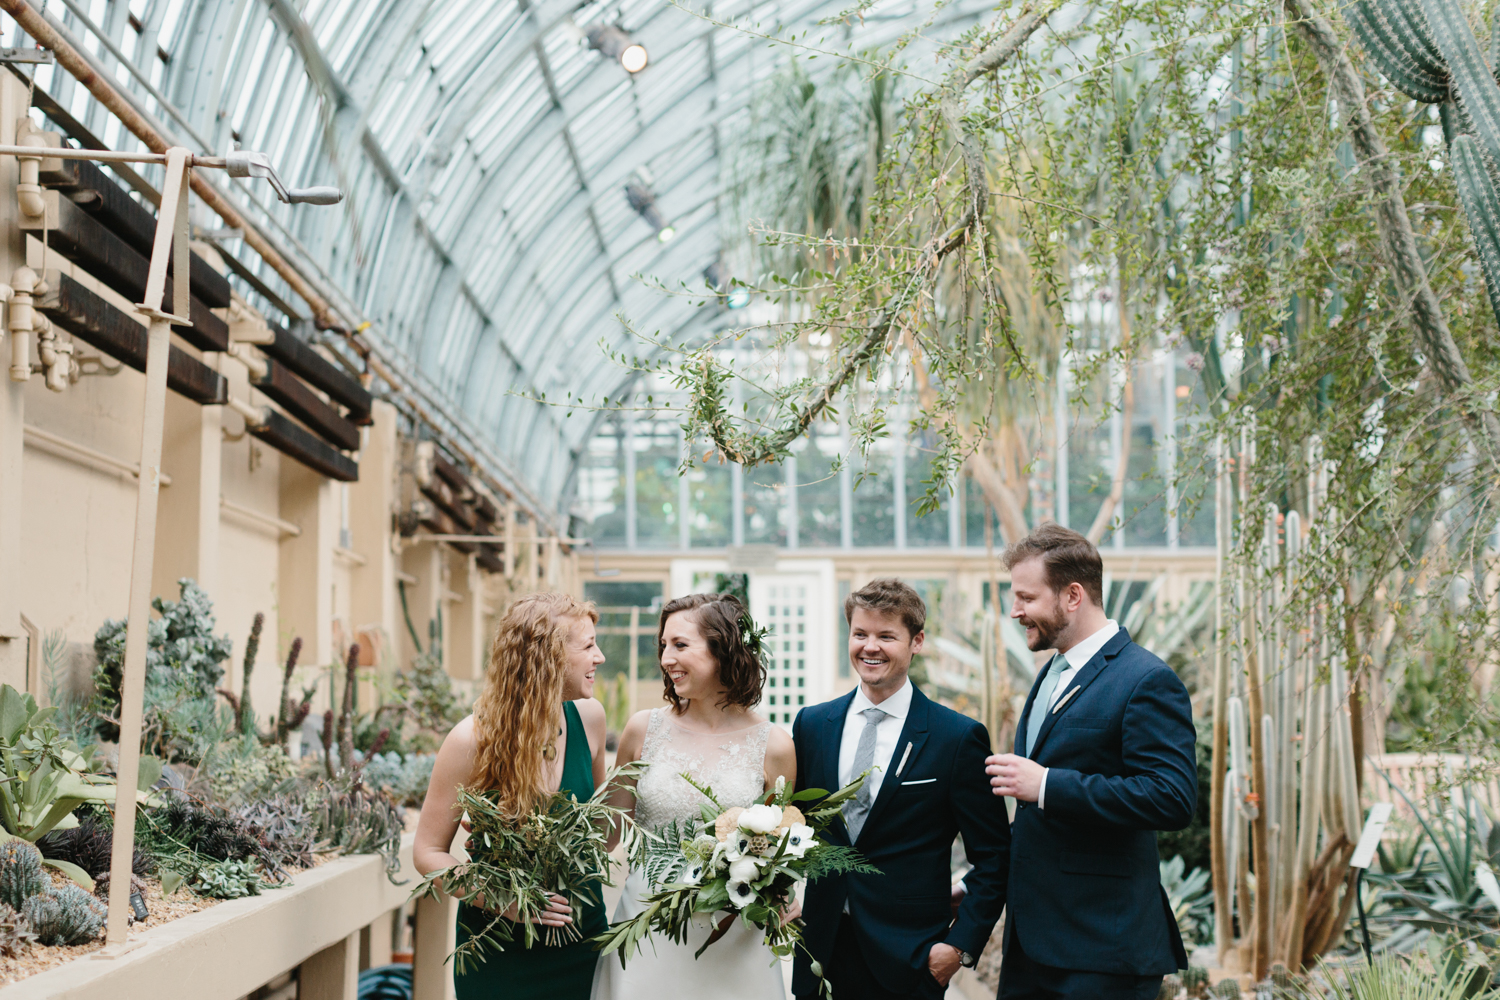 Chicago Garfield Park Conservatory Wedding by Northern Michigan Photographer Mae Stier-046.jpg